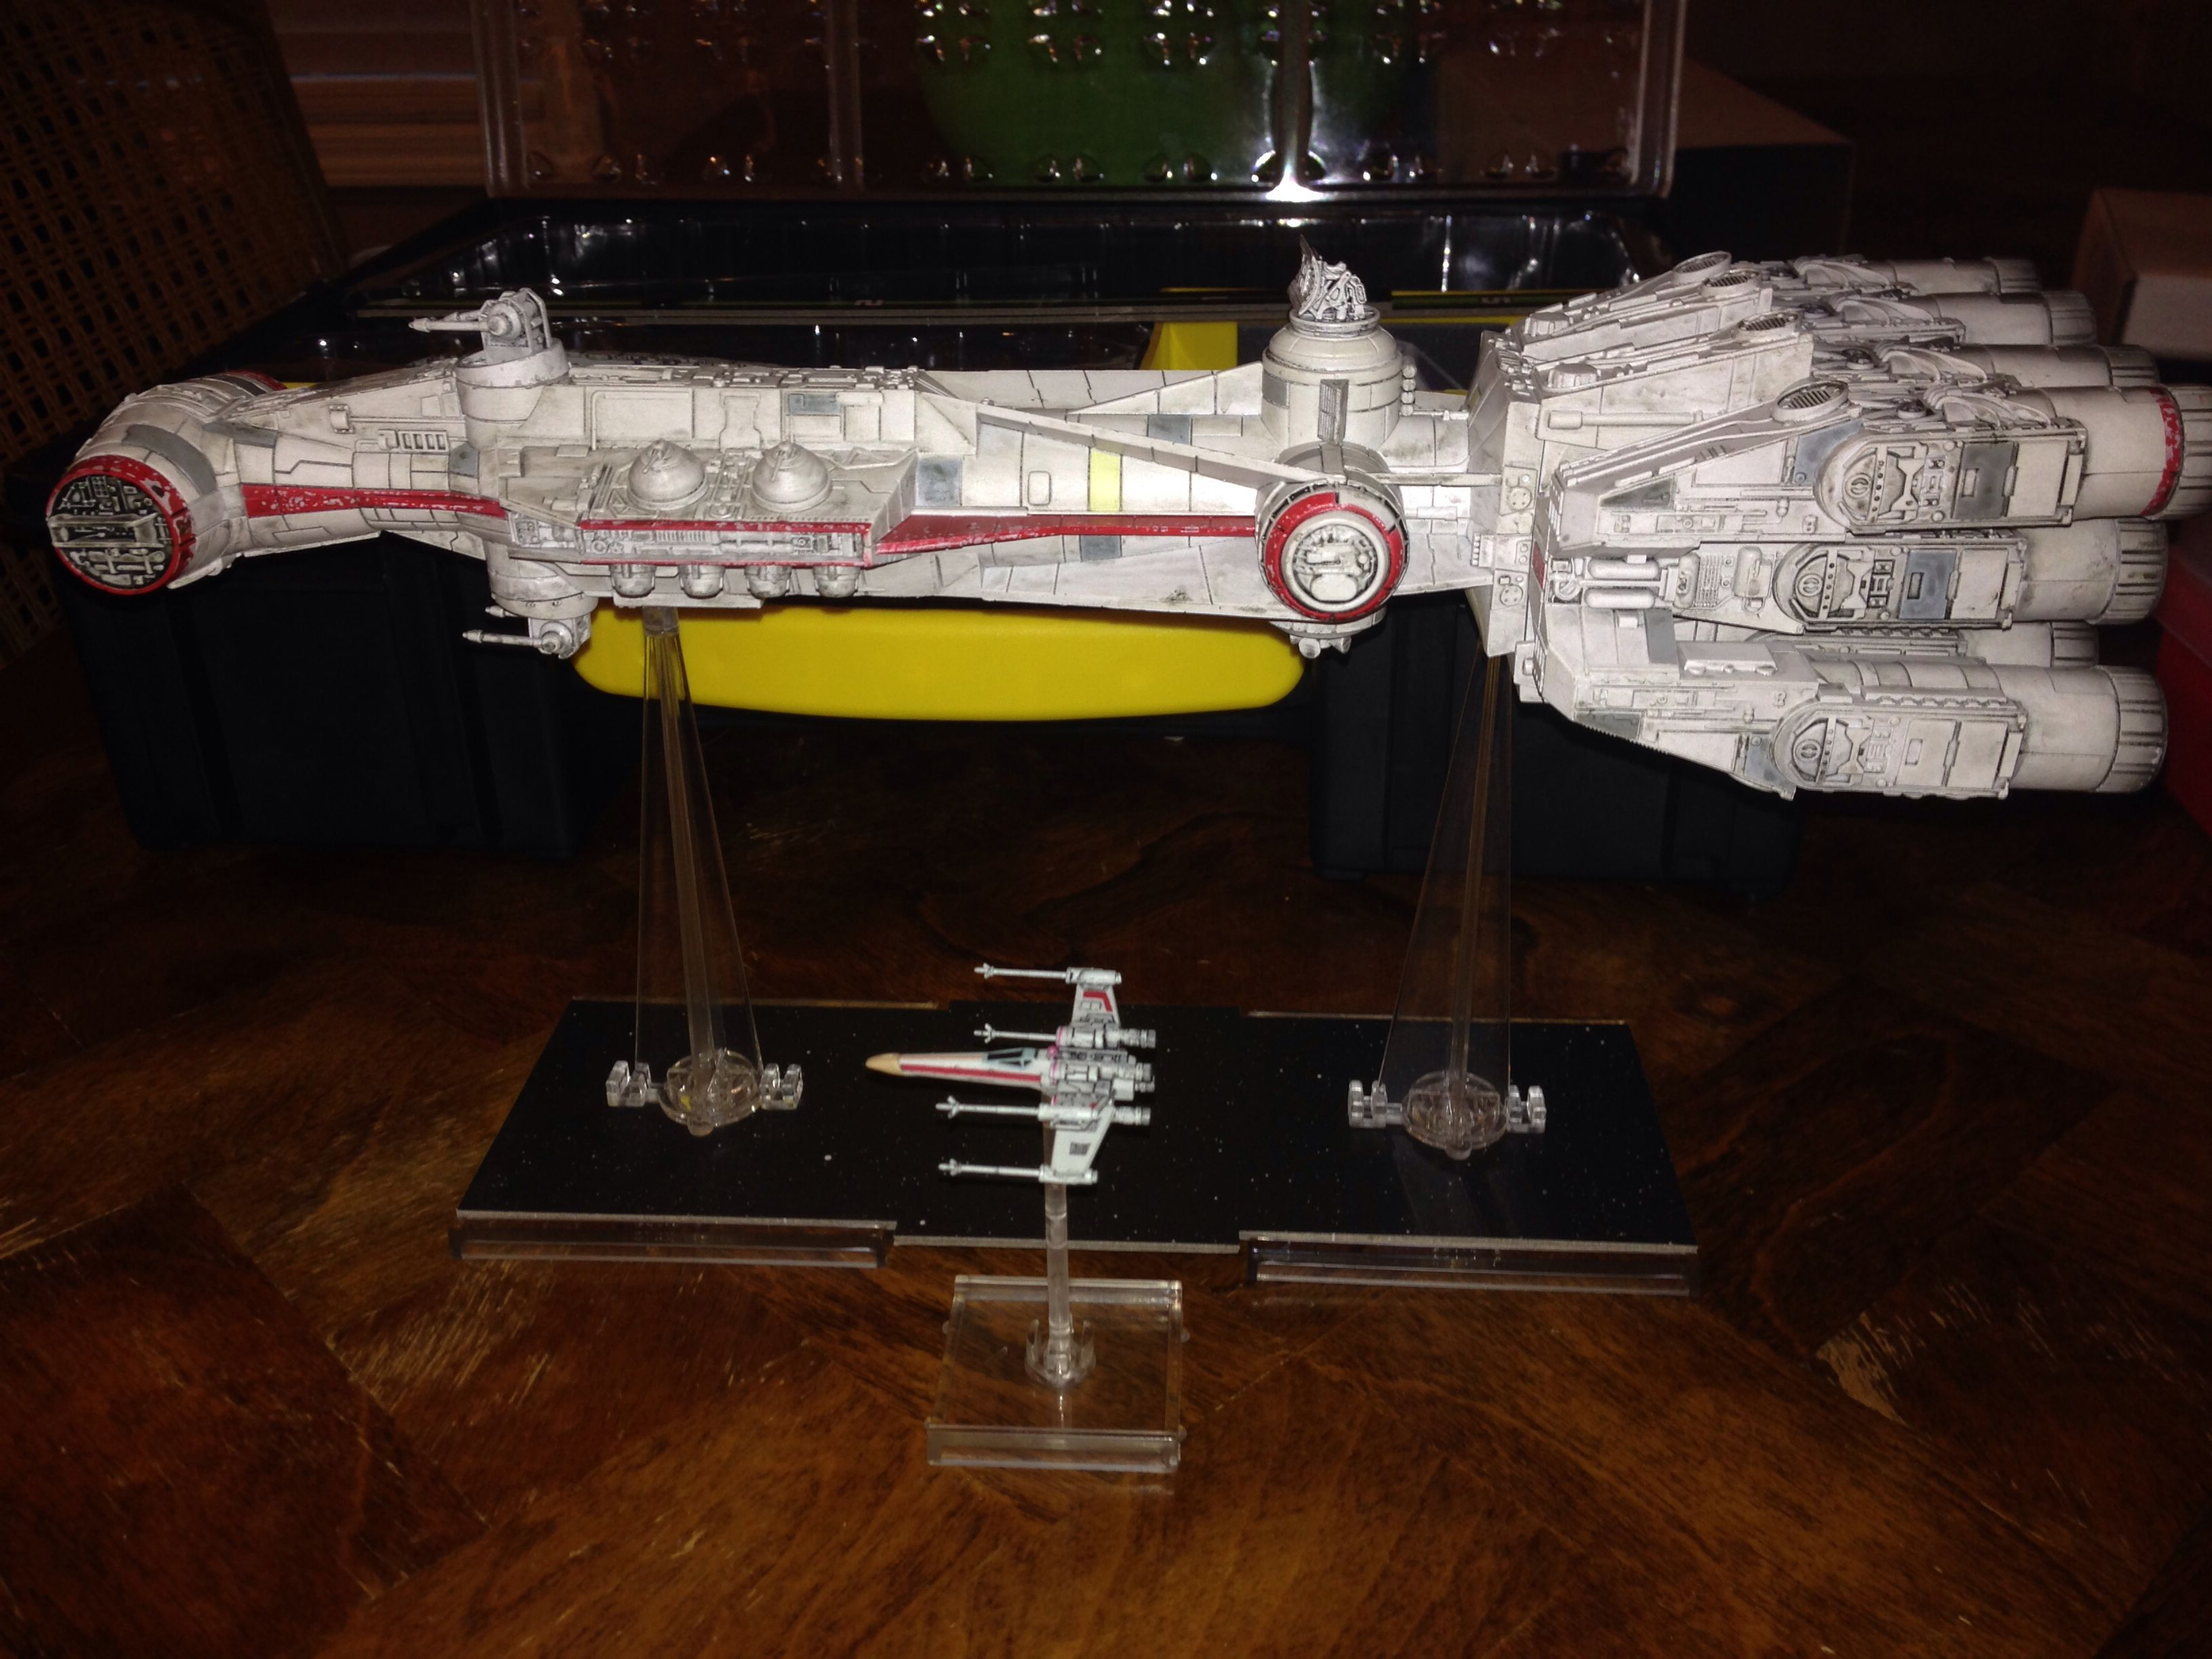 Crv Size Comparison With An X Wing Star Wars Universe X Wing Miniatures Star Wars Stars